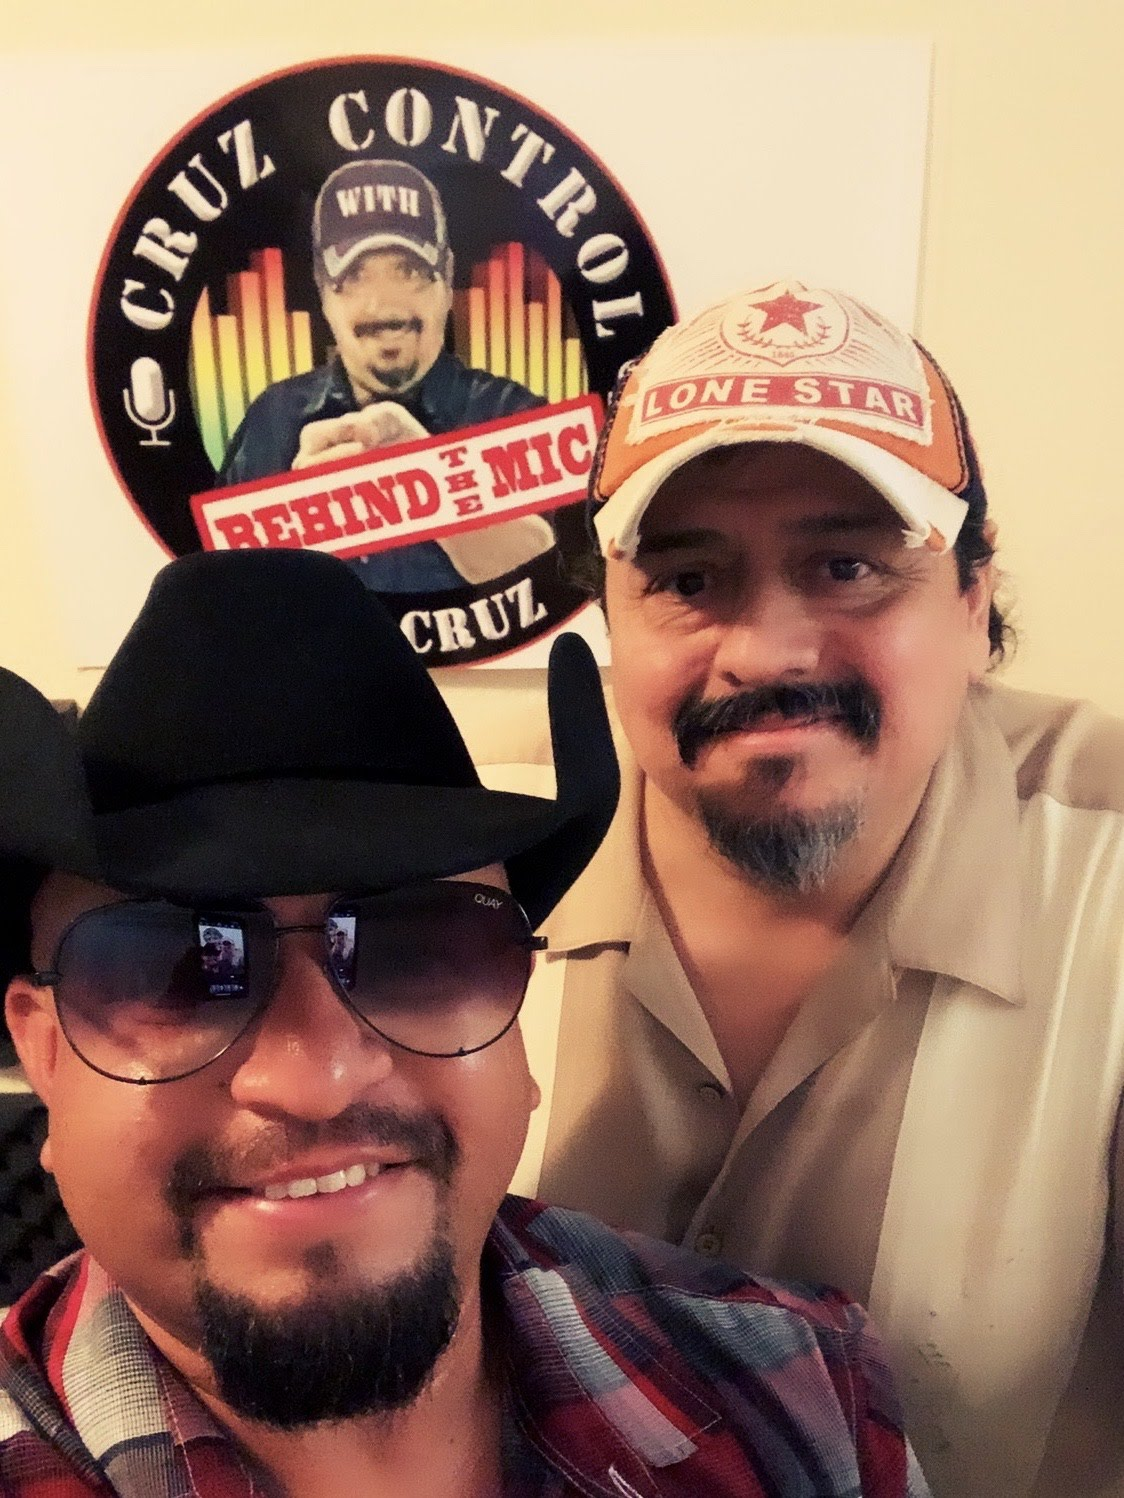 Behind the Mic with Sunny Sauceda